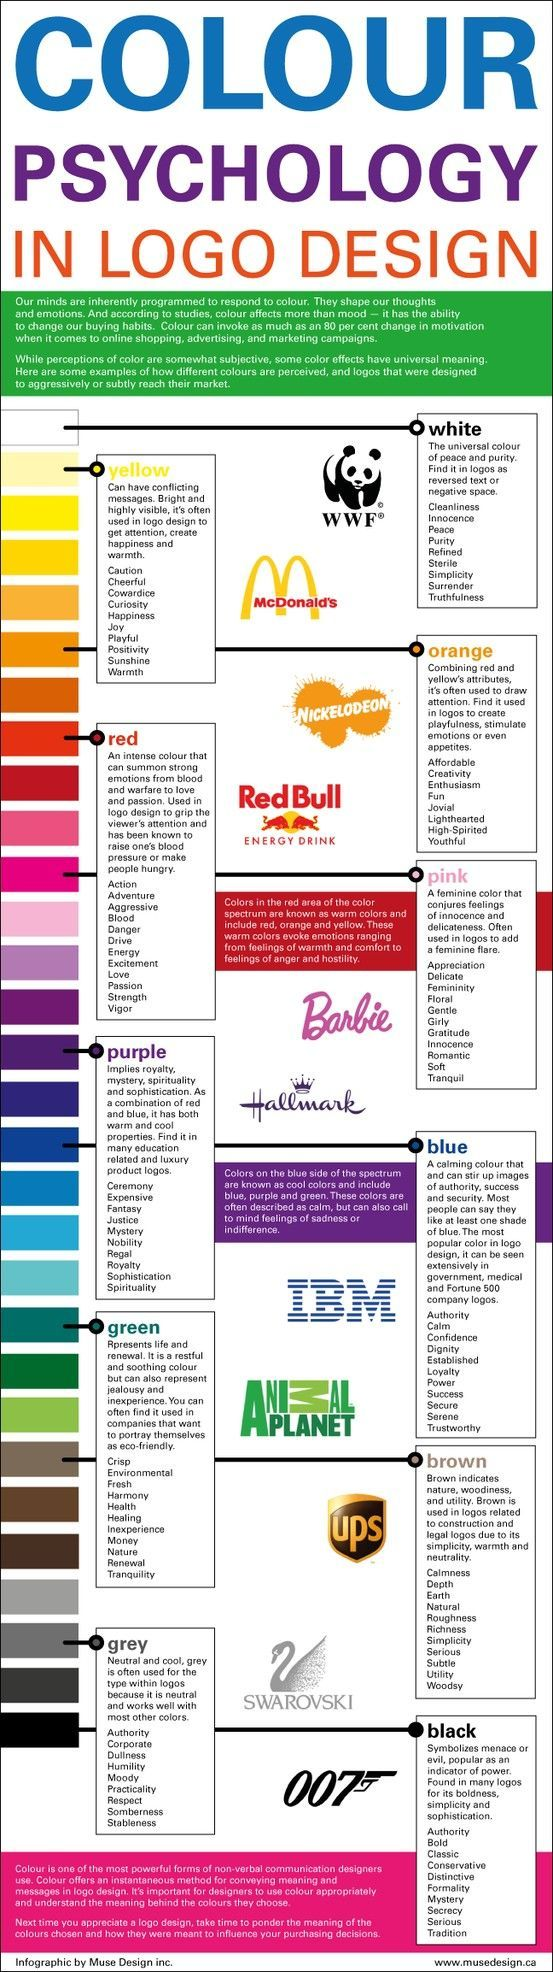 Color psychology in logo design. Studied this in high school & I've always loved it!